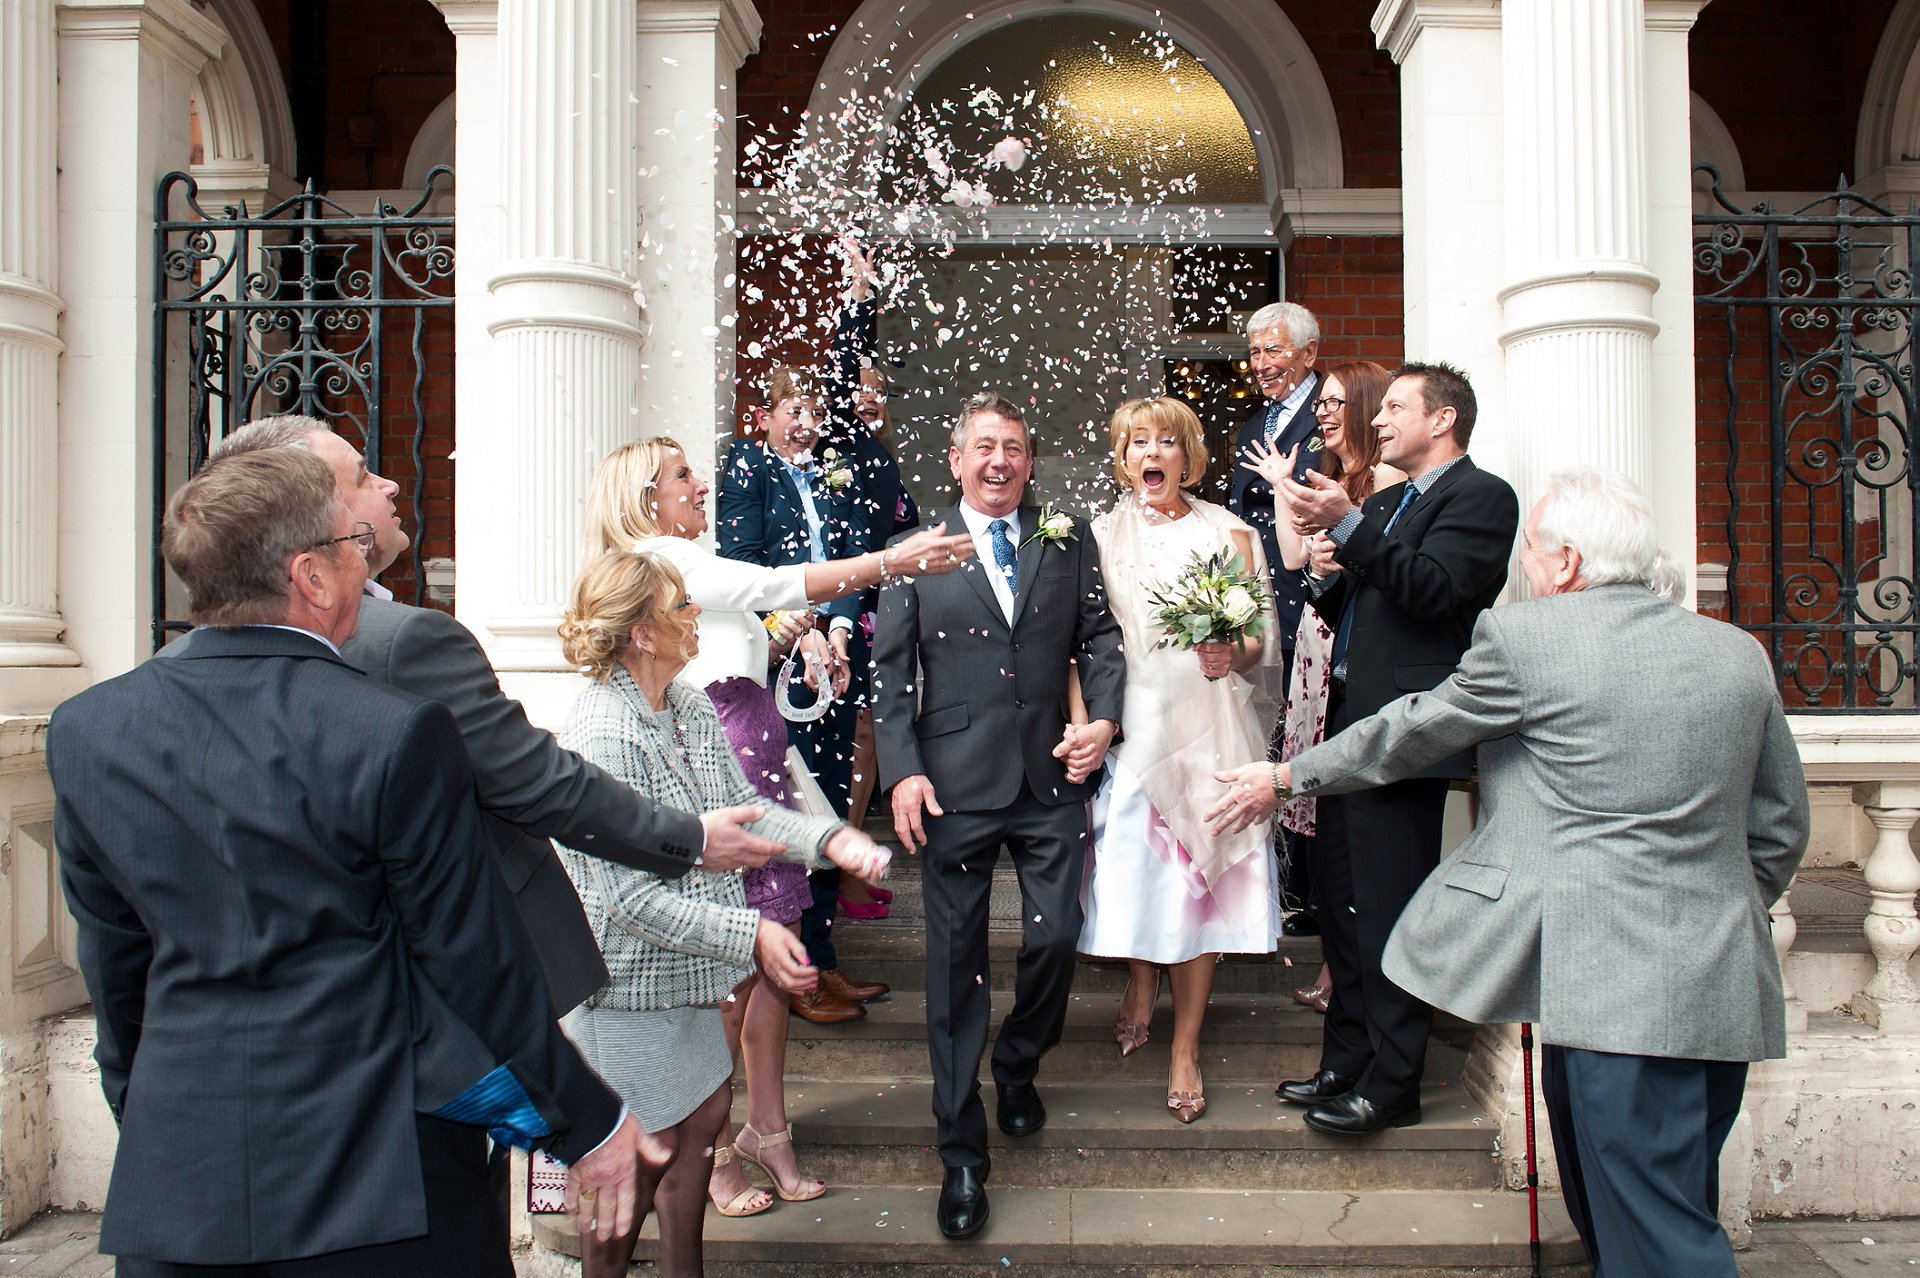 Richoux Wedding Reception and teh Bride & Groom exit Mayfair Library on South Audley Street through a hail of confetti looking so happy to married